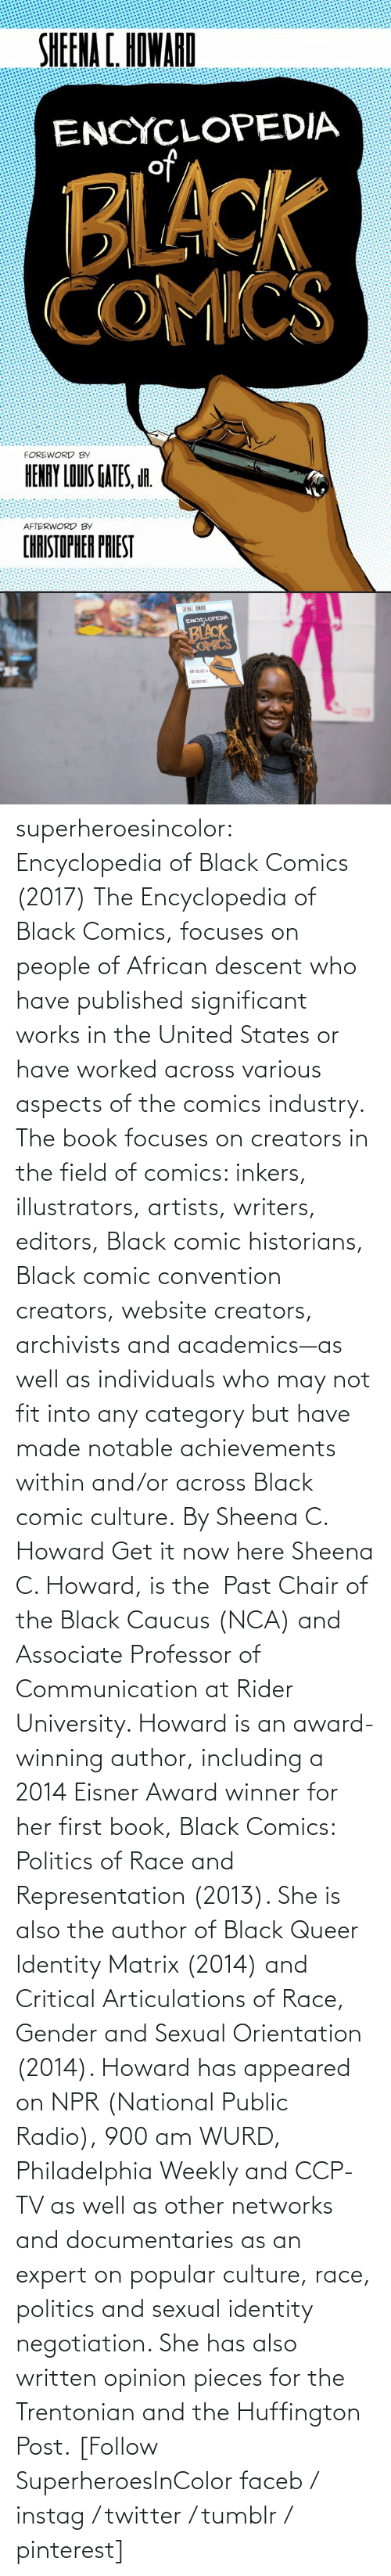 Facebook: superheroesincolor: Encyclopedia of Black Comics (2017) The Encyclopedia of Black Comics, focuses on people of African descent who have published significant works in the United States or have worked across various aspects of the comics industry.  The book focuses on creators in the field of comics: inkers, illustrators, artists, writers, editors, Black comic historians, Black comic convention creators, website creators, archivists and academics—as well as individuals who may not fit into any category but have made notable achievements within and/or across Black comic culture. By Sheena C. Howard Get it now here  Sheena C. Howard, is the  Past Chair of the Black Caucus (NCA) and Associate Professor of Communication at Rider University. Howard is an award-winning author, including a 2014 Eisner Award winner for her first book, Black Comics: Politics of Race and Representation (2013). She is also the author of Black Queer Identity Matrix (2014) and Critical Articulations of Race, Gender and Sexual Orientation (2014). Howard has appeared on NPR (National Public Radio), 900 am WURD, Philadelphia Weekly and CCP-TV as well as other networks and documentaries as an expert on popular culture, race, politics and sexual identity negotiation. She has also written opinion pieces for the Trentonian and the Huffington Post.   [Follow SuperheroesInColor faceb / instag / twitter / tumblr / pinterest]